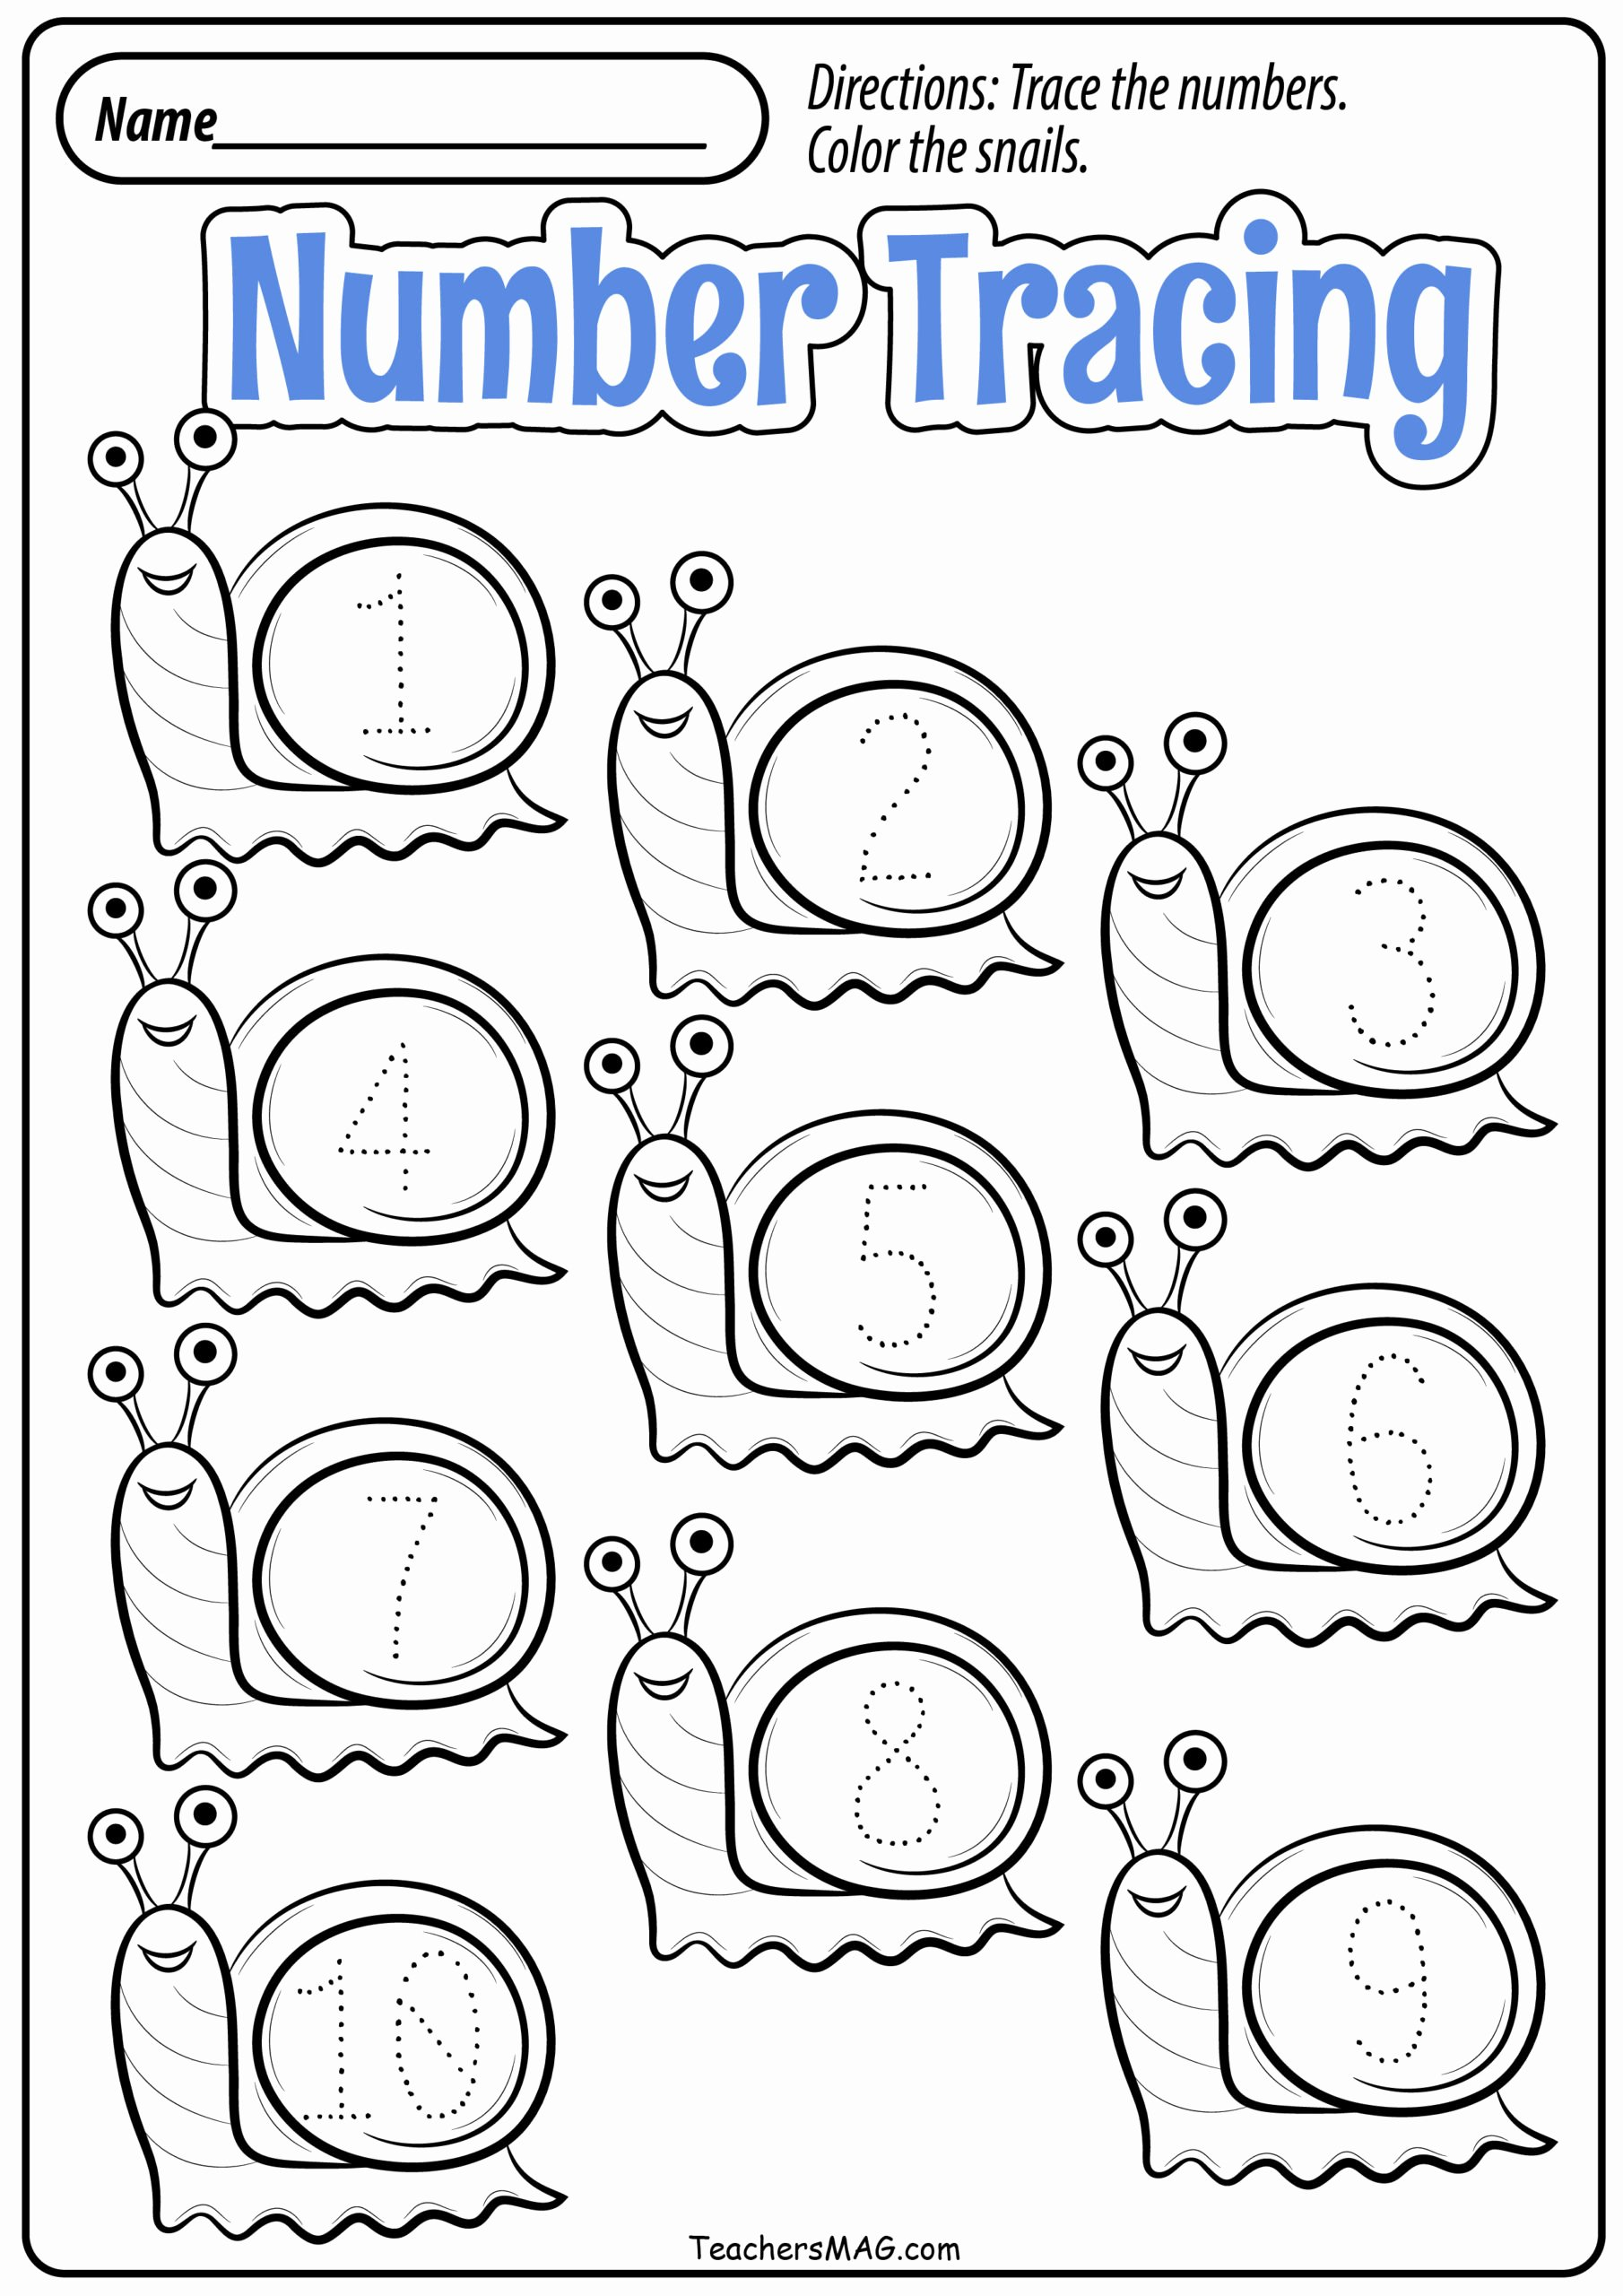 Matching Pictures Worksheets for Preschoolers New Worksheets Math Worksheet Preschool Worksheets Free Image